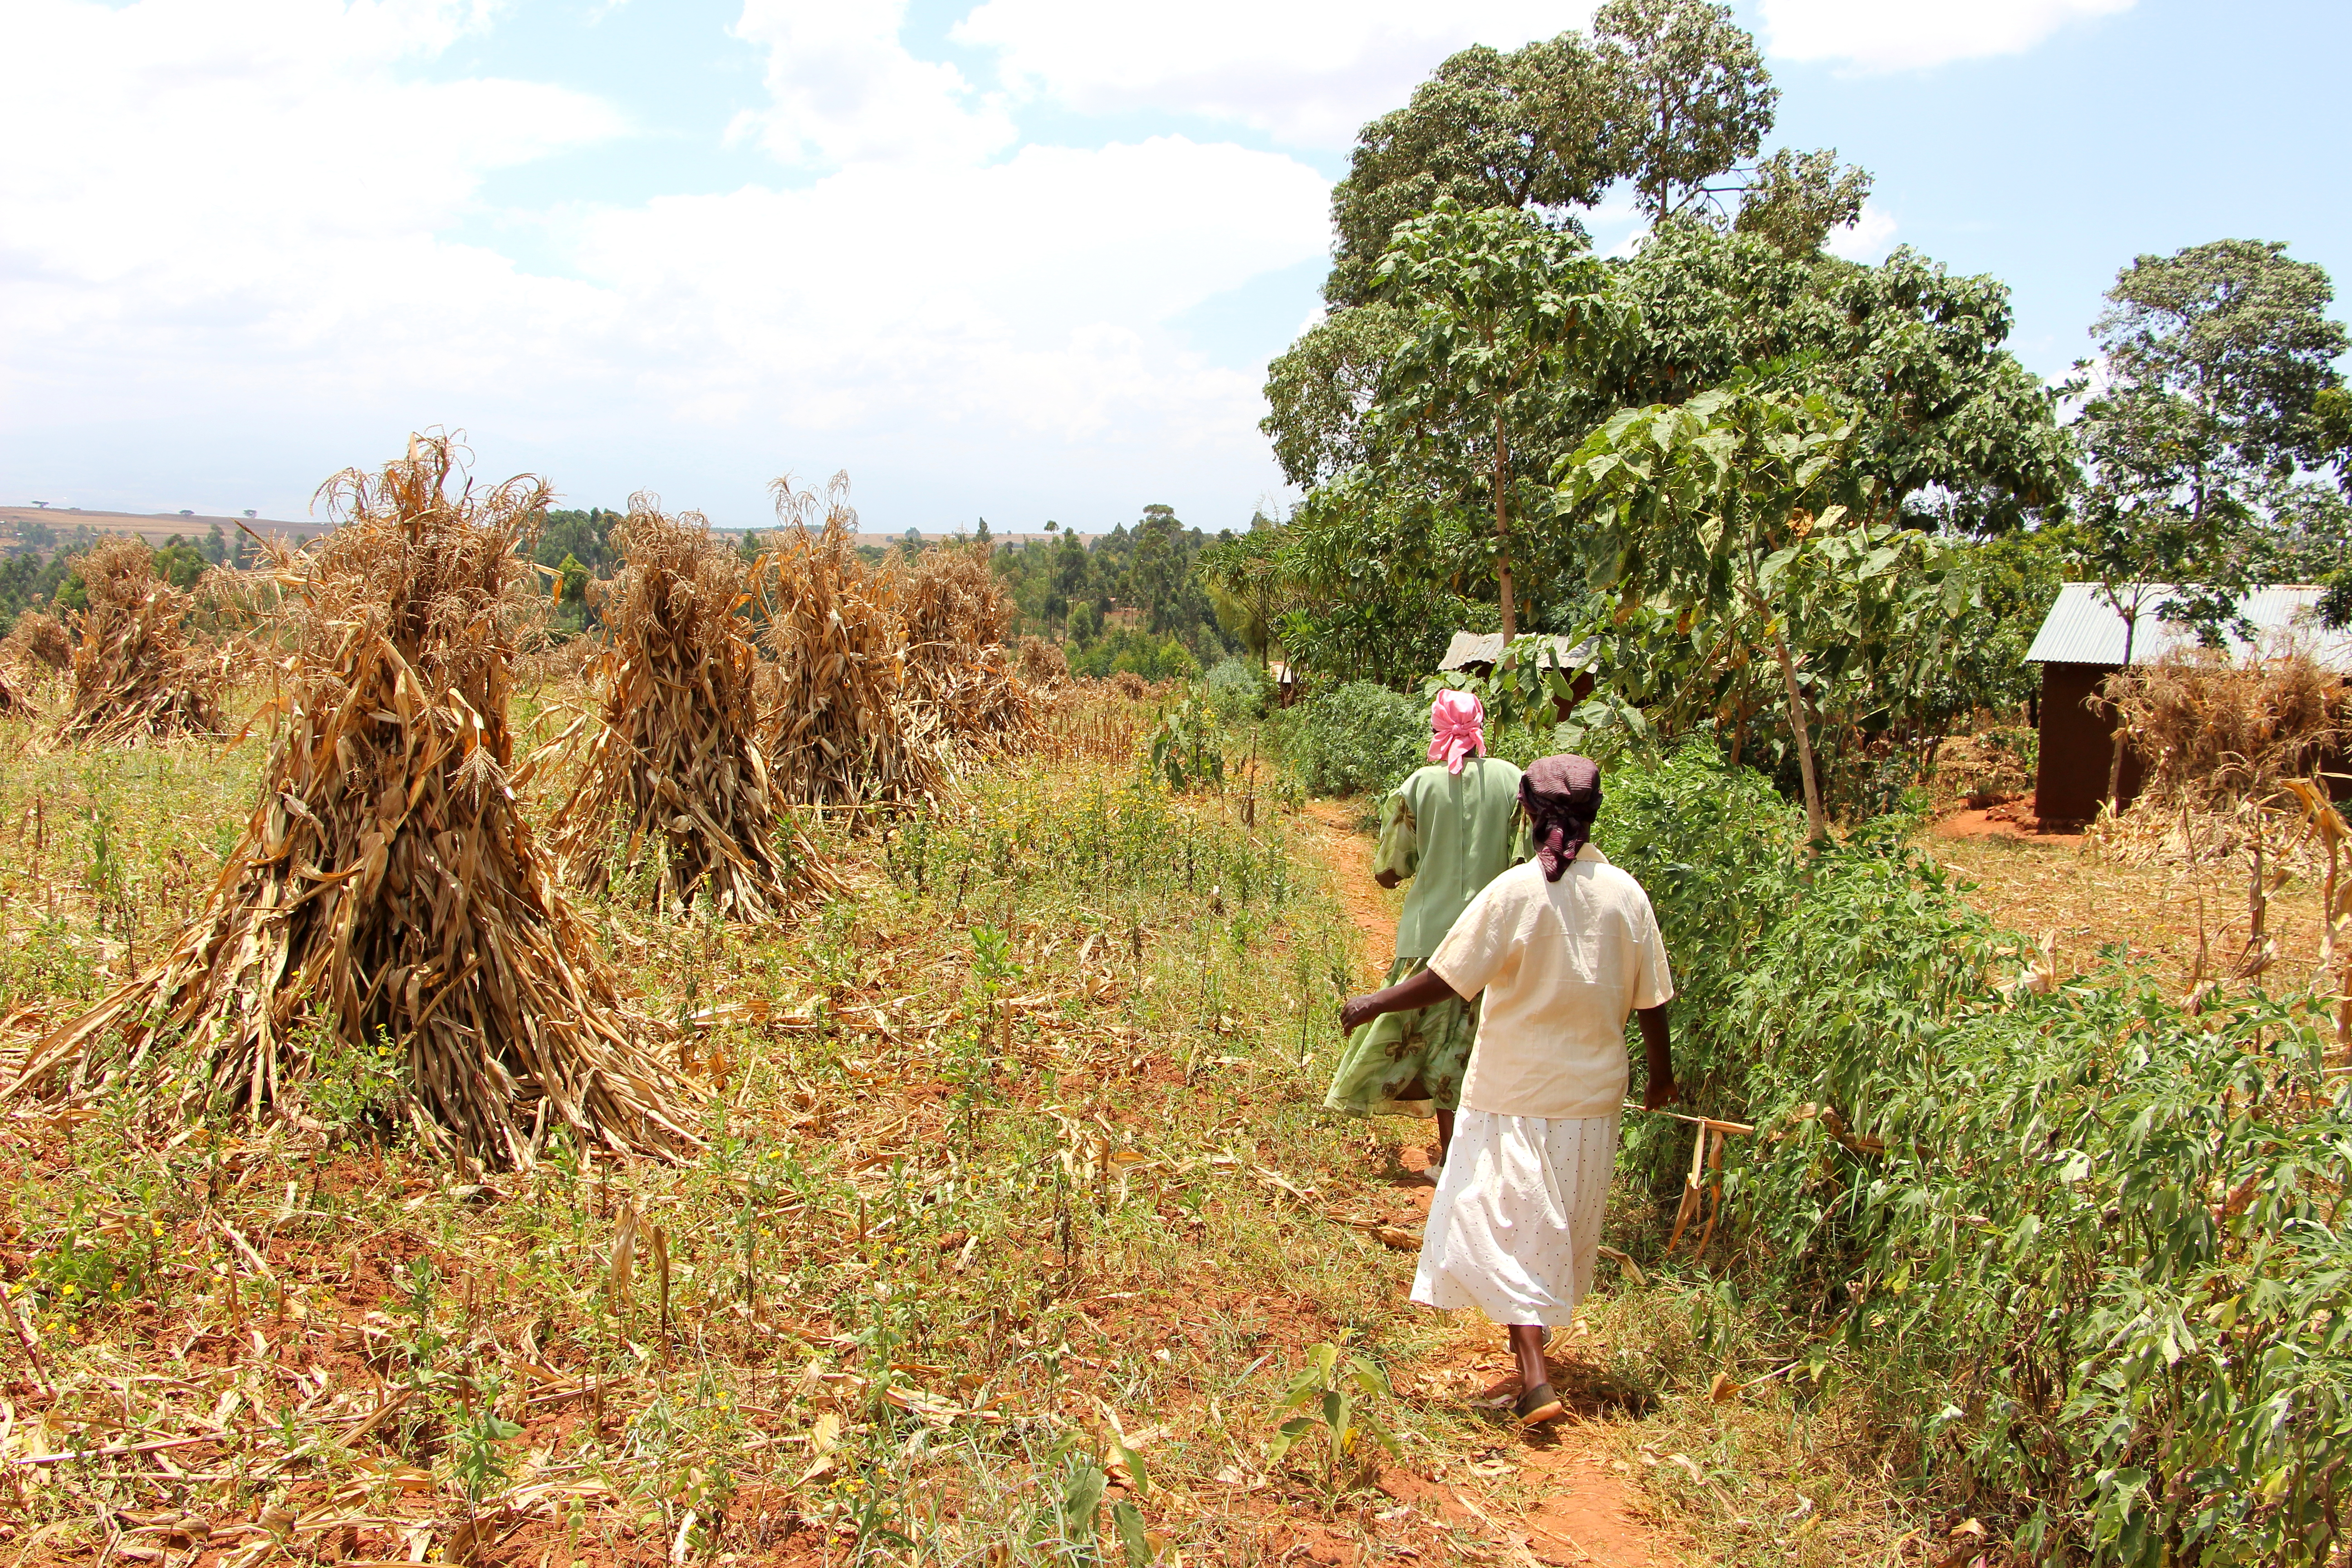 Two Village Enterprise business owners in their drying maize fields.